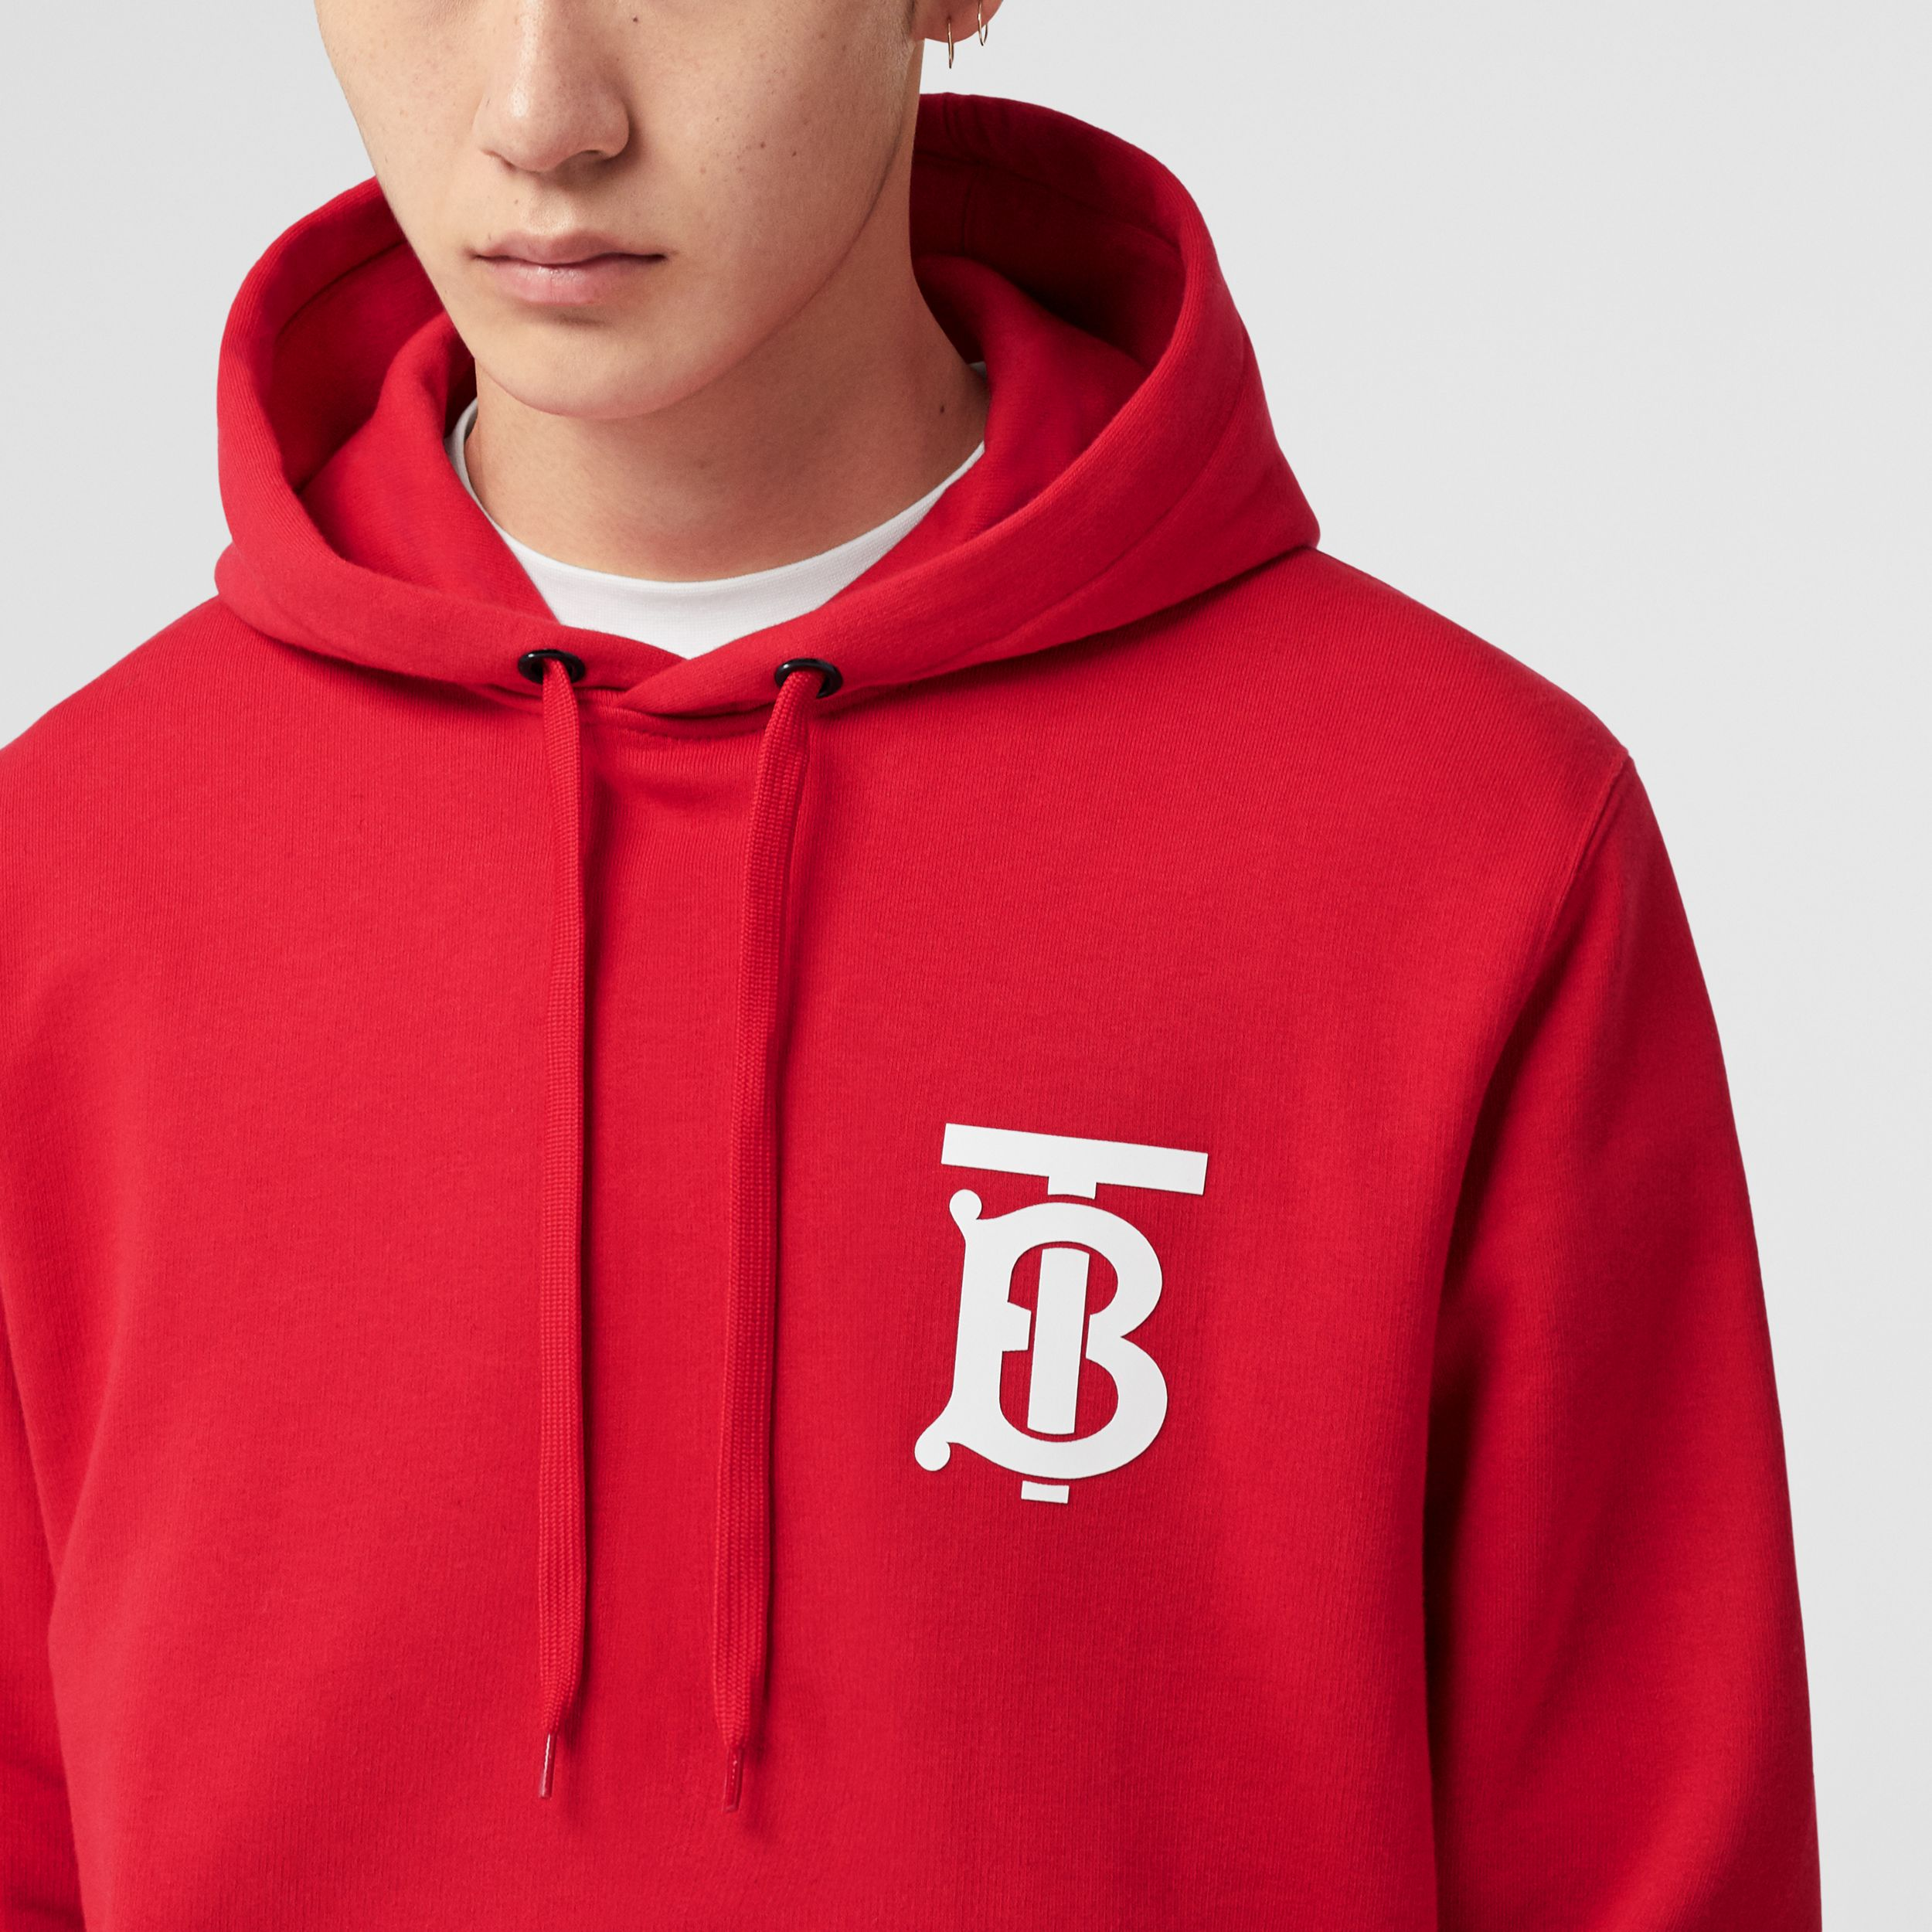 Monogram Motif Cotton Hoodie in Bright Red - Men | Burberry - 2